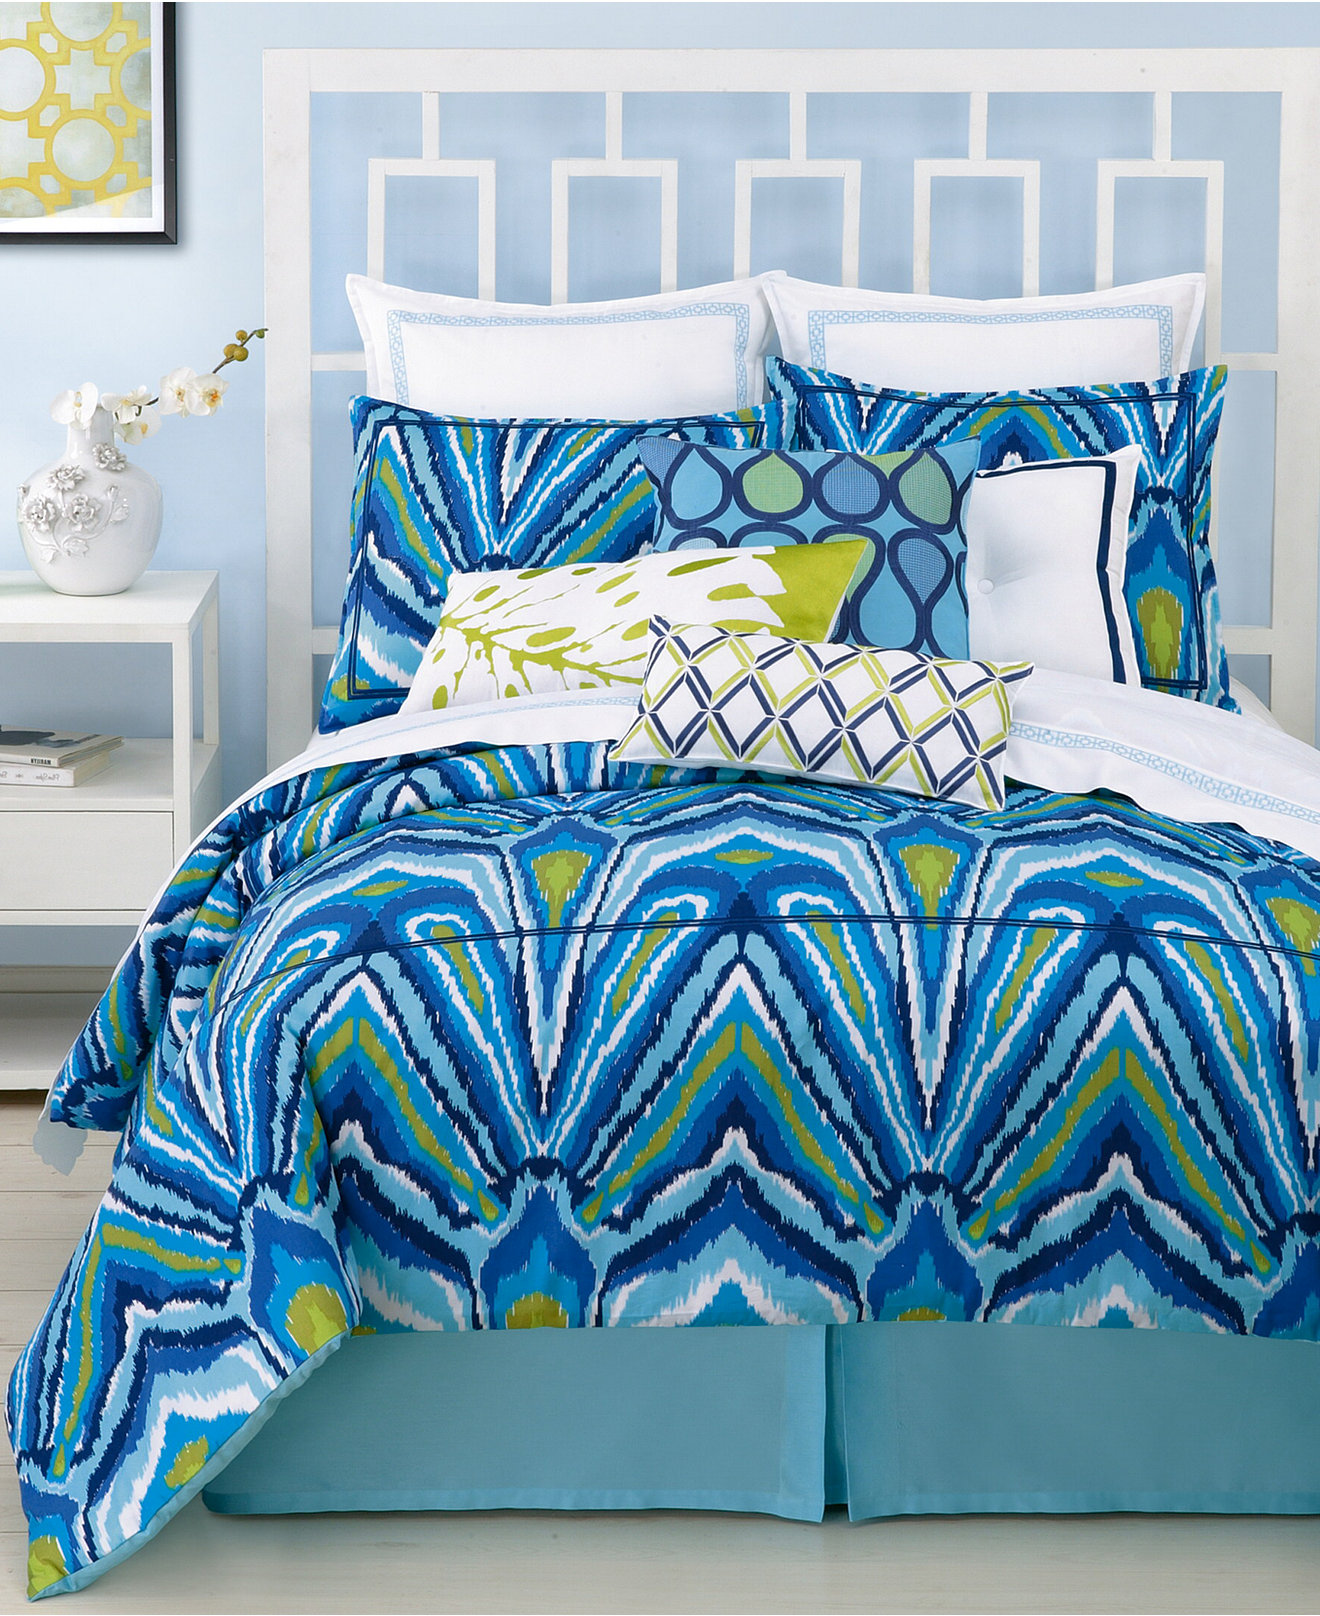 Blue bedspreads and comforters - Trina Turk Blue Peacock Comforter And Duvet Cover Sets Bedding Collections Bed Bath Macy S